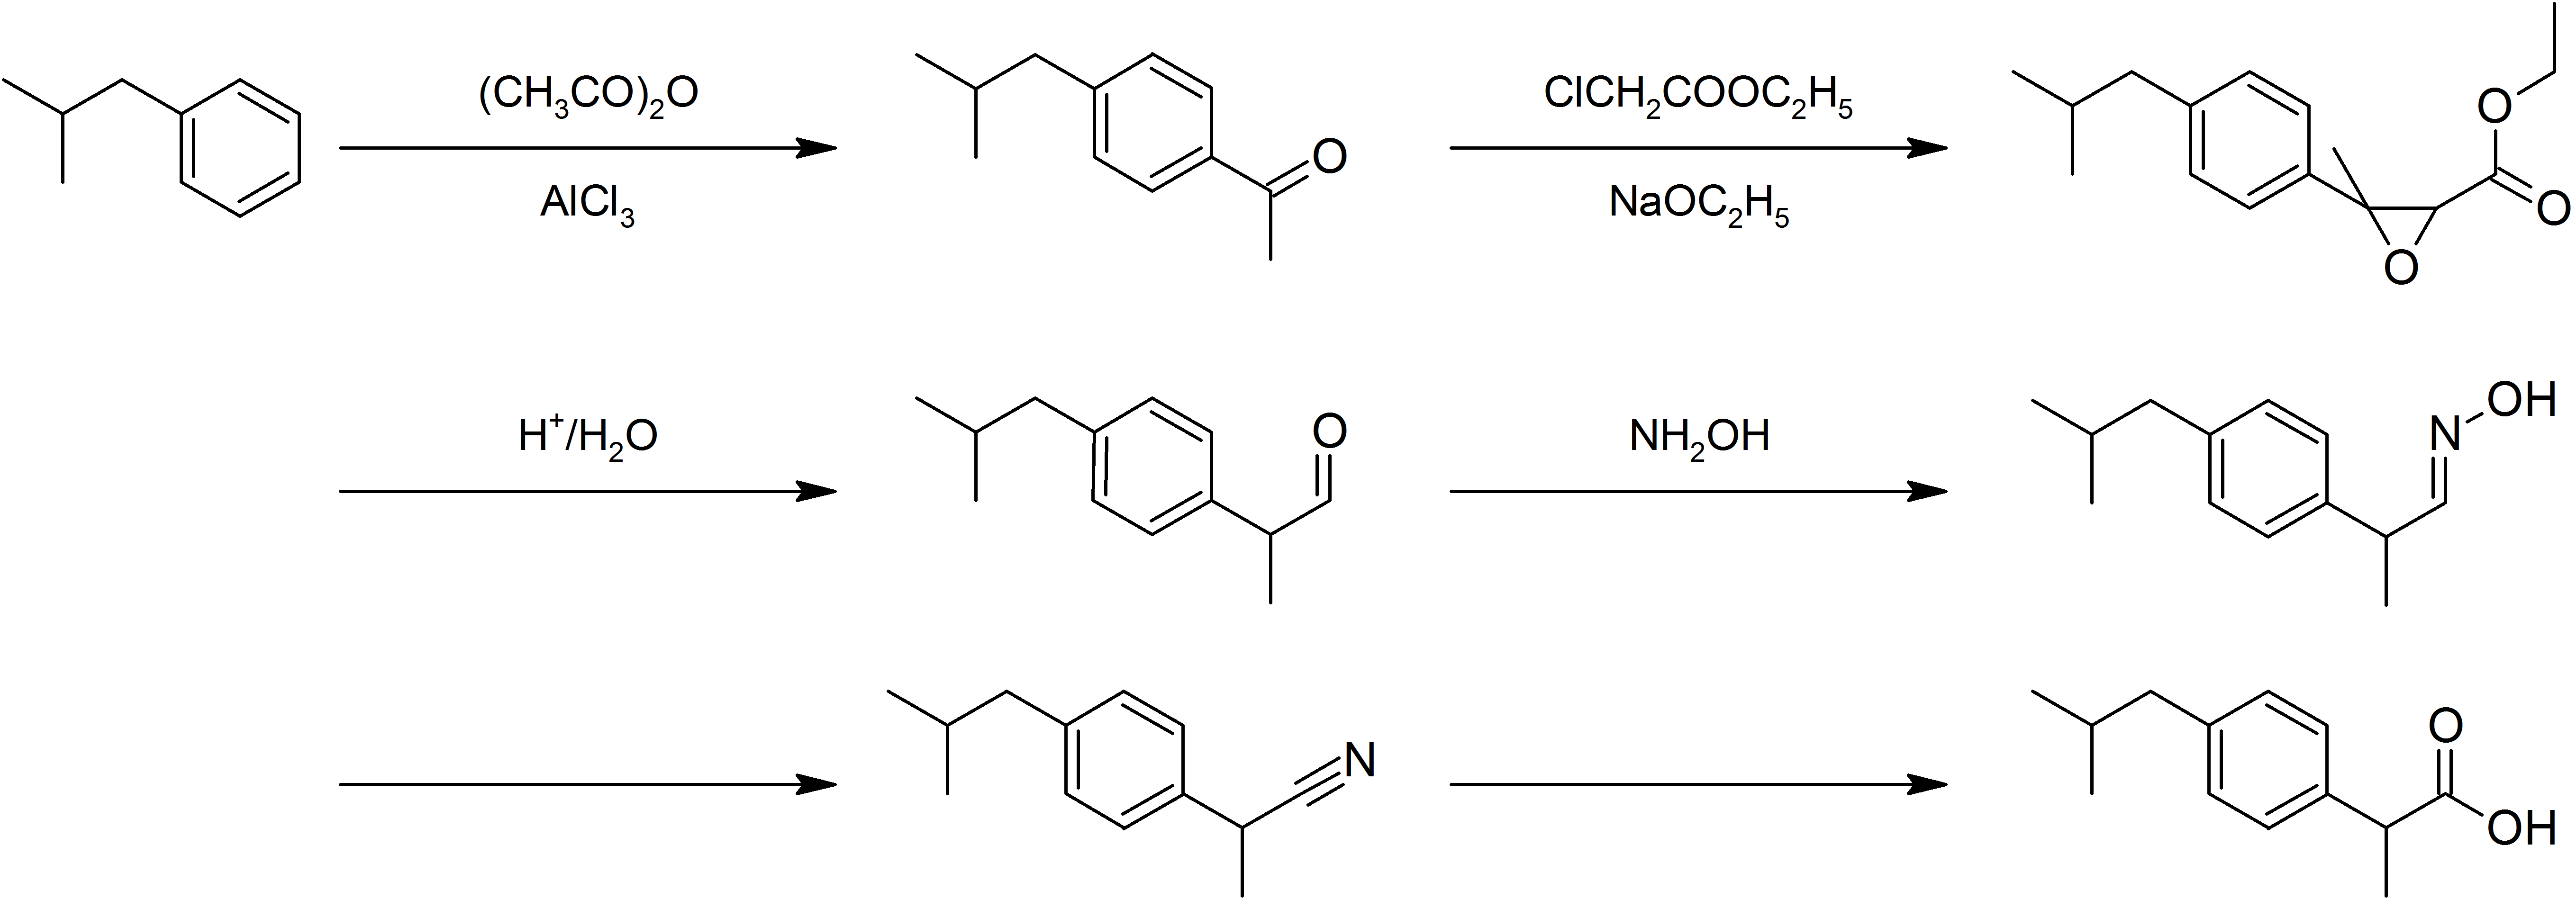 File:Boots synthesis of ibuprofen.png - Wikimedia Commons